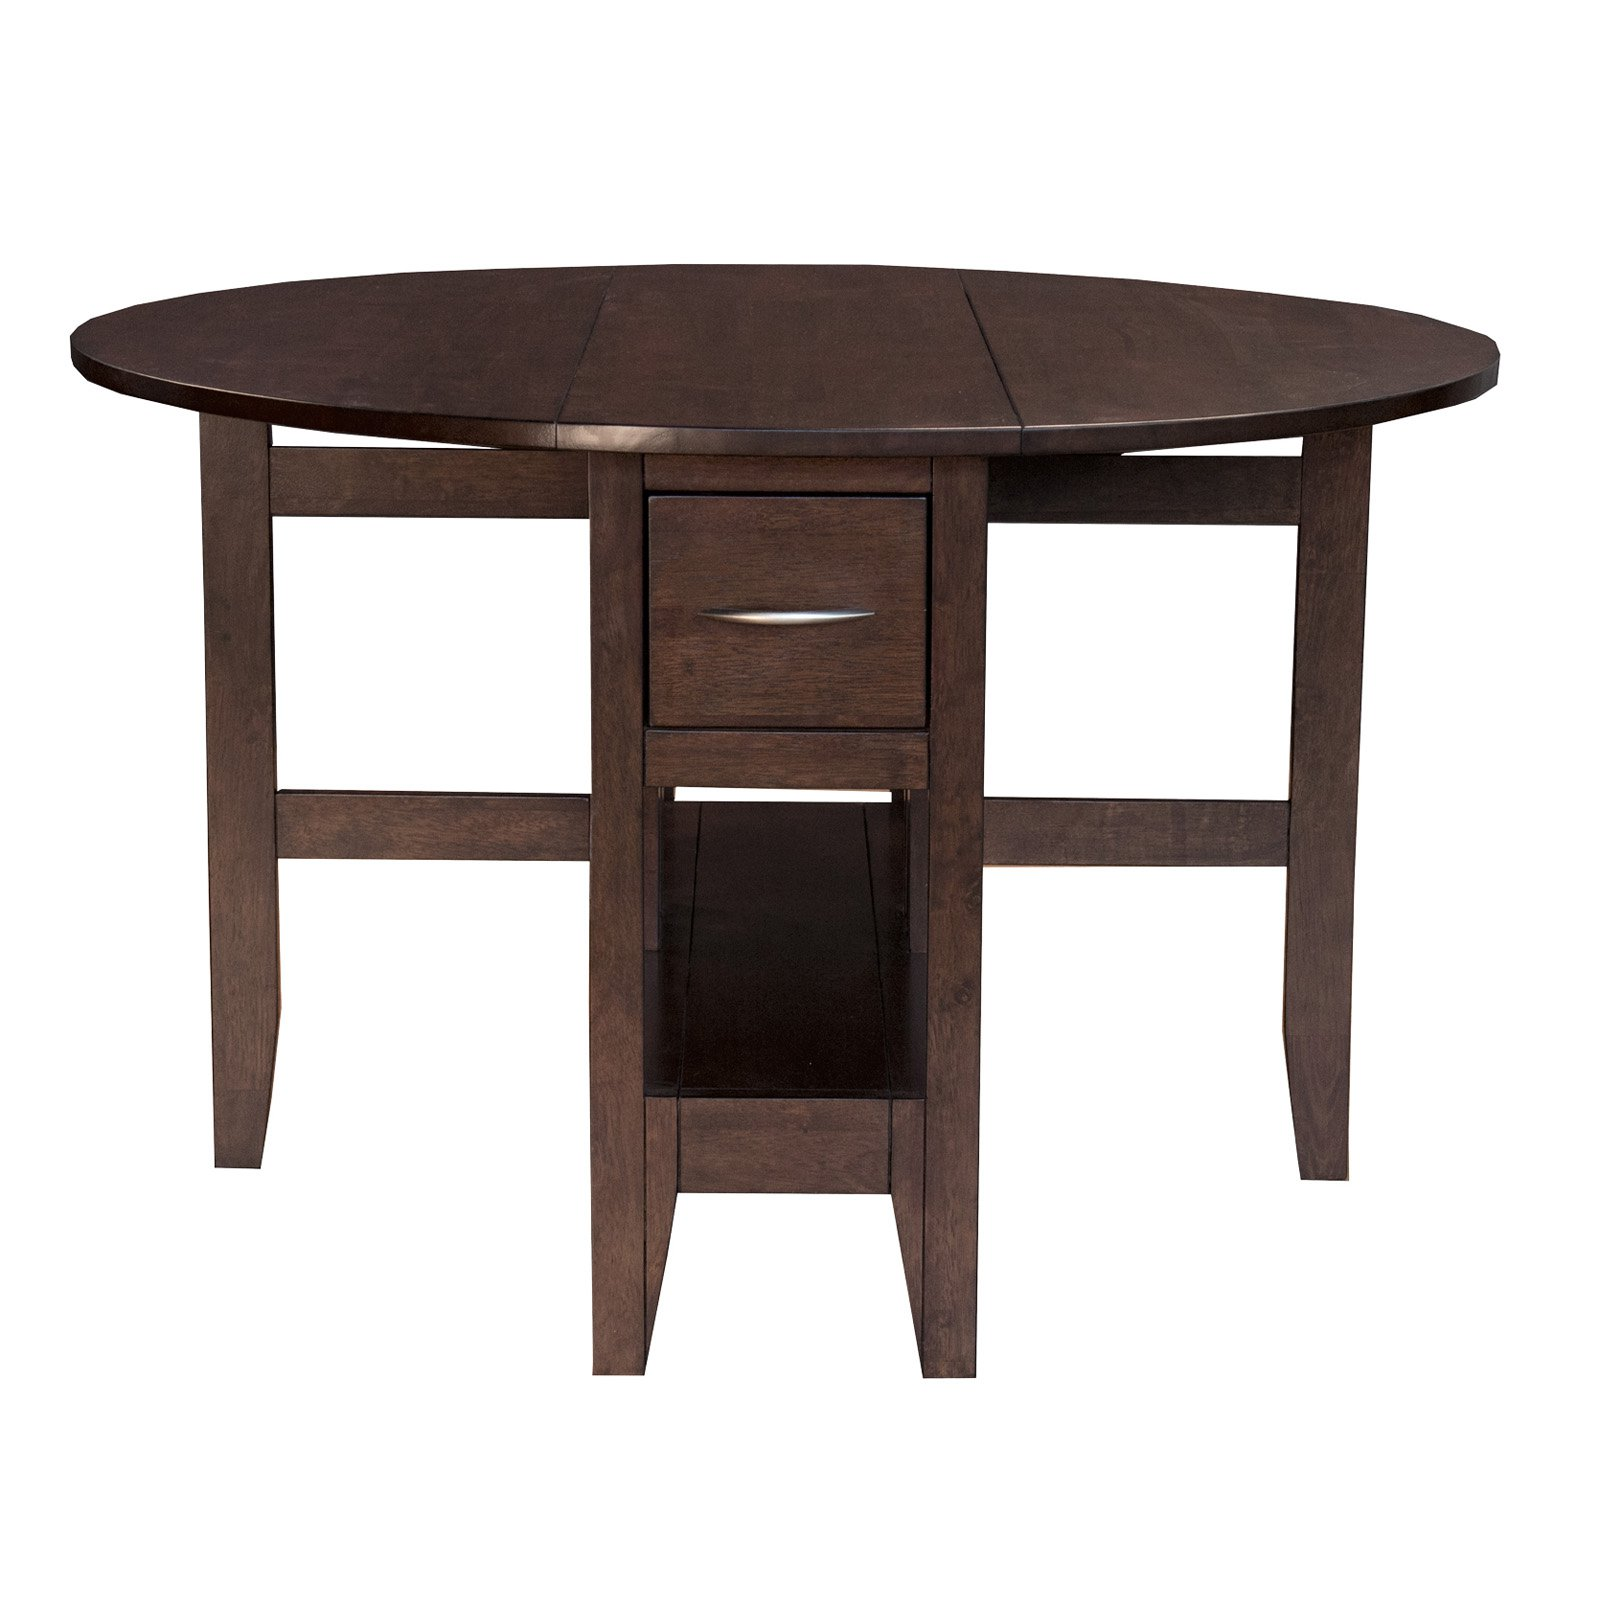 A-America Brooklyn Heights Gate Lef Round Dining Table